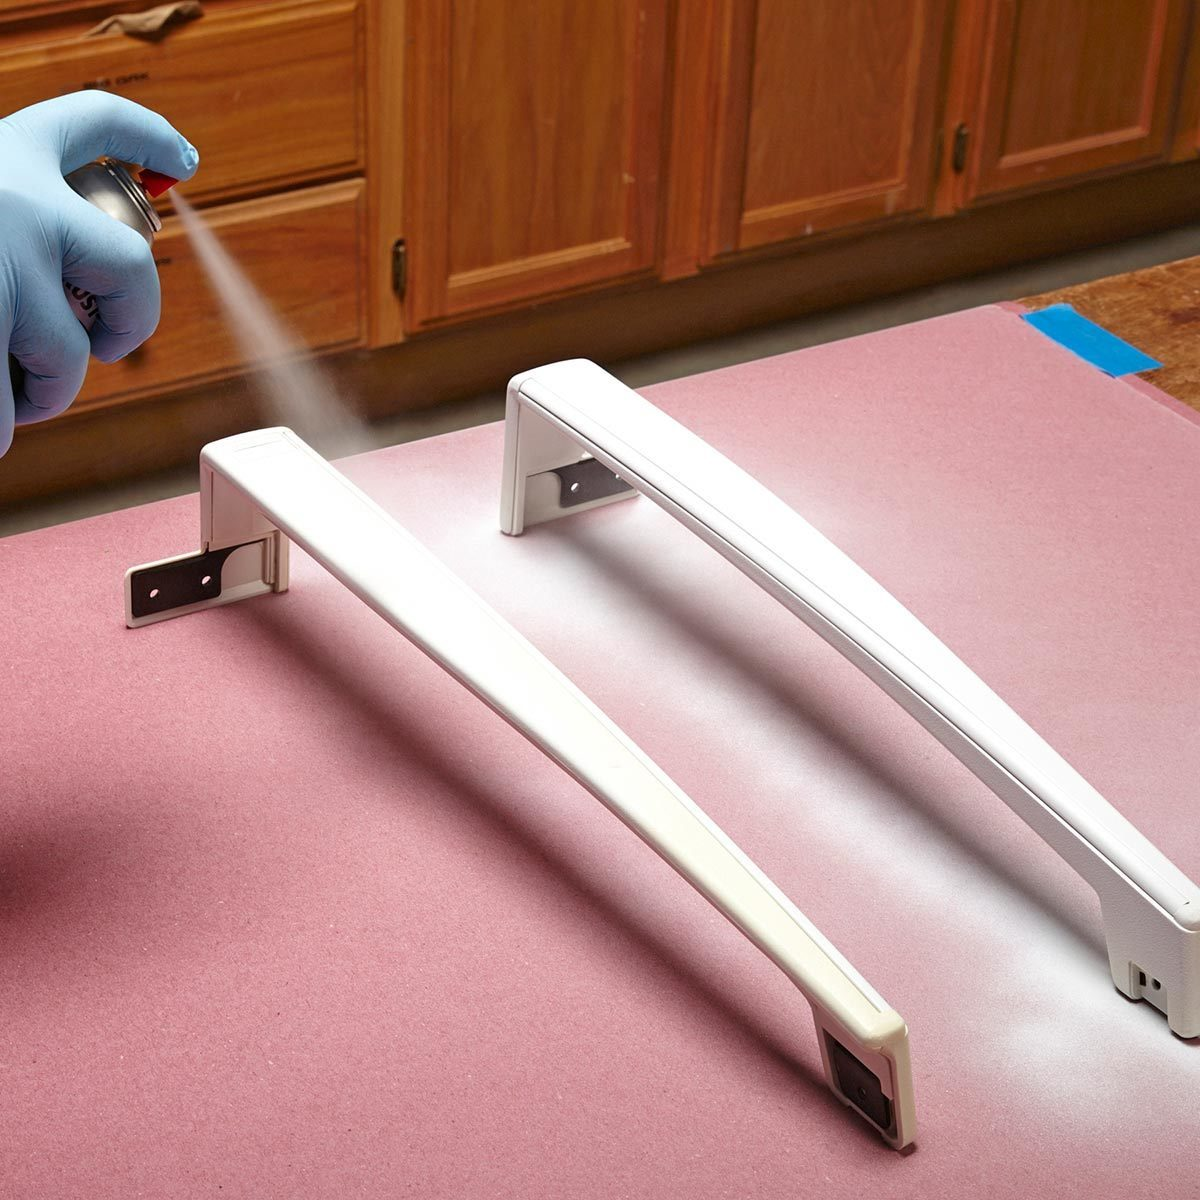 Paint appliance handles